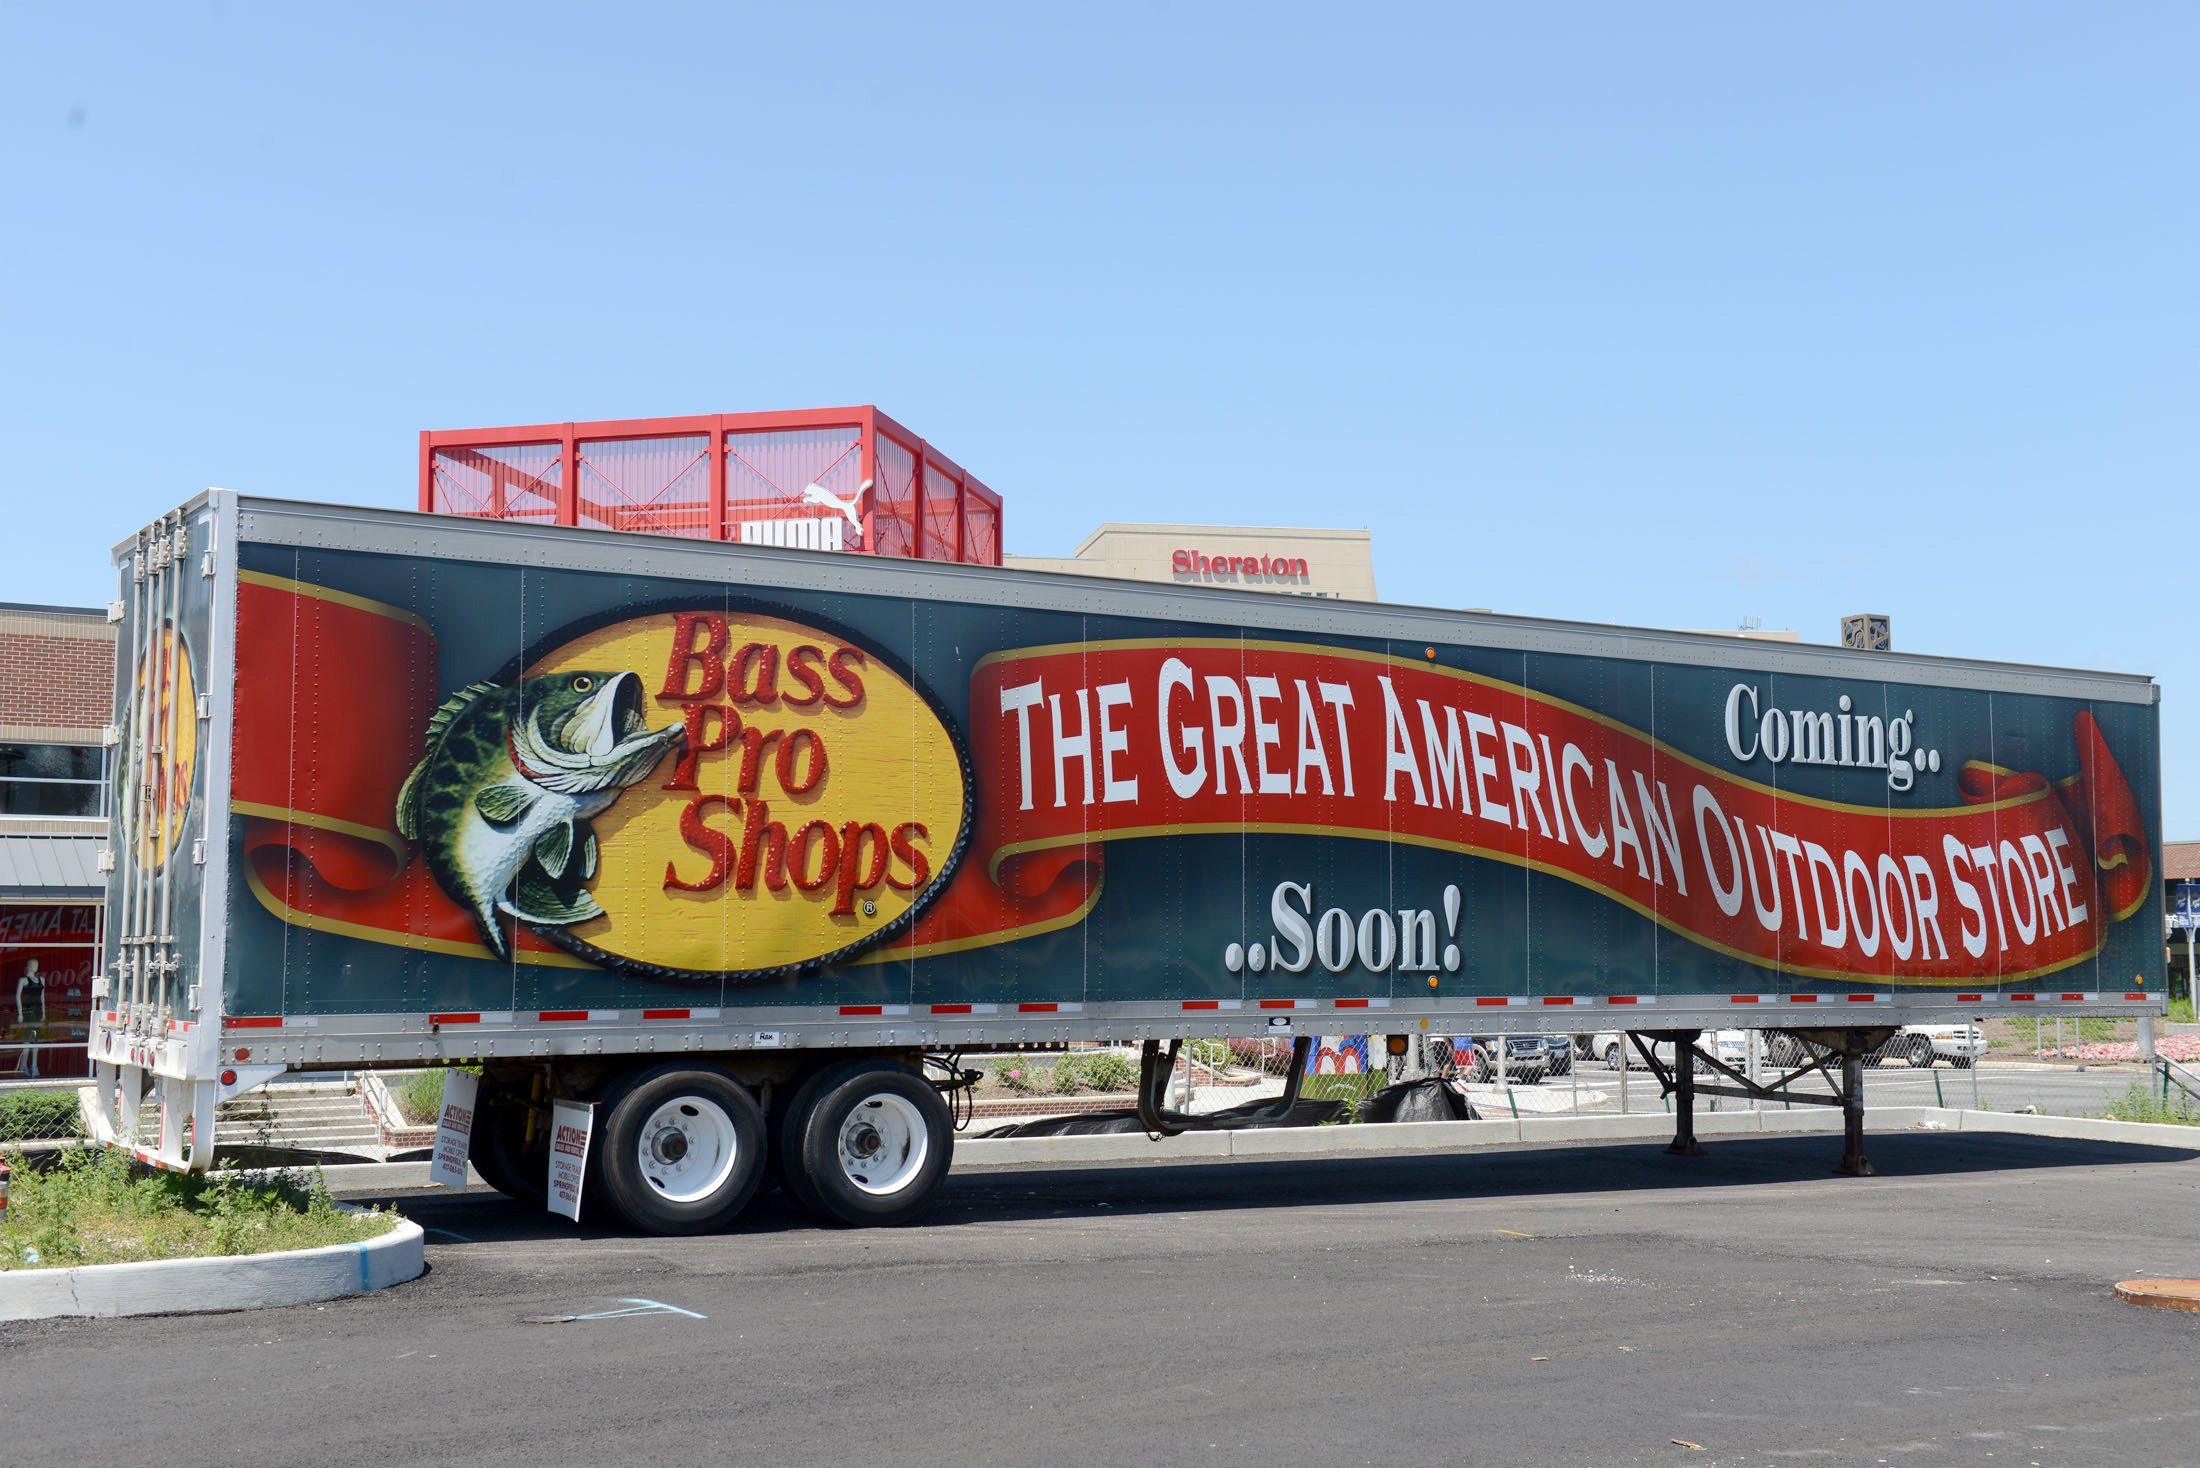 Bass Pro Shops are coming to Atlantic City soon.